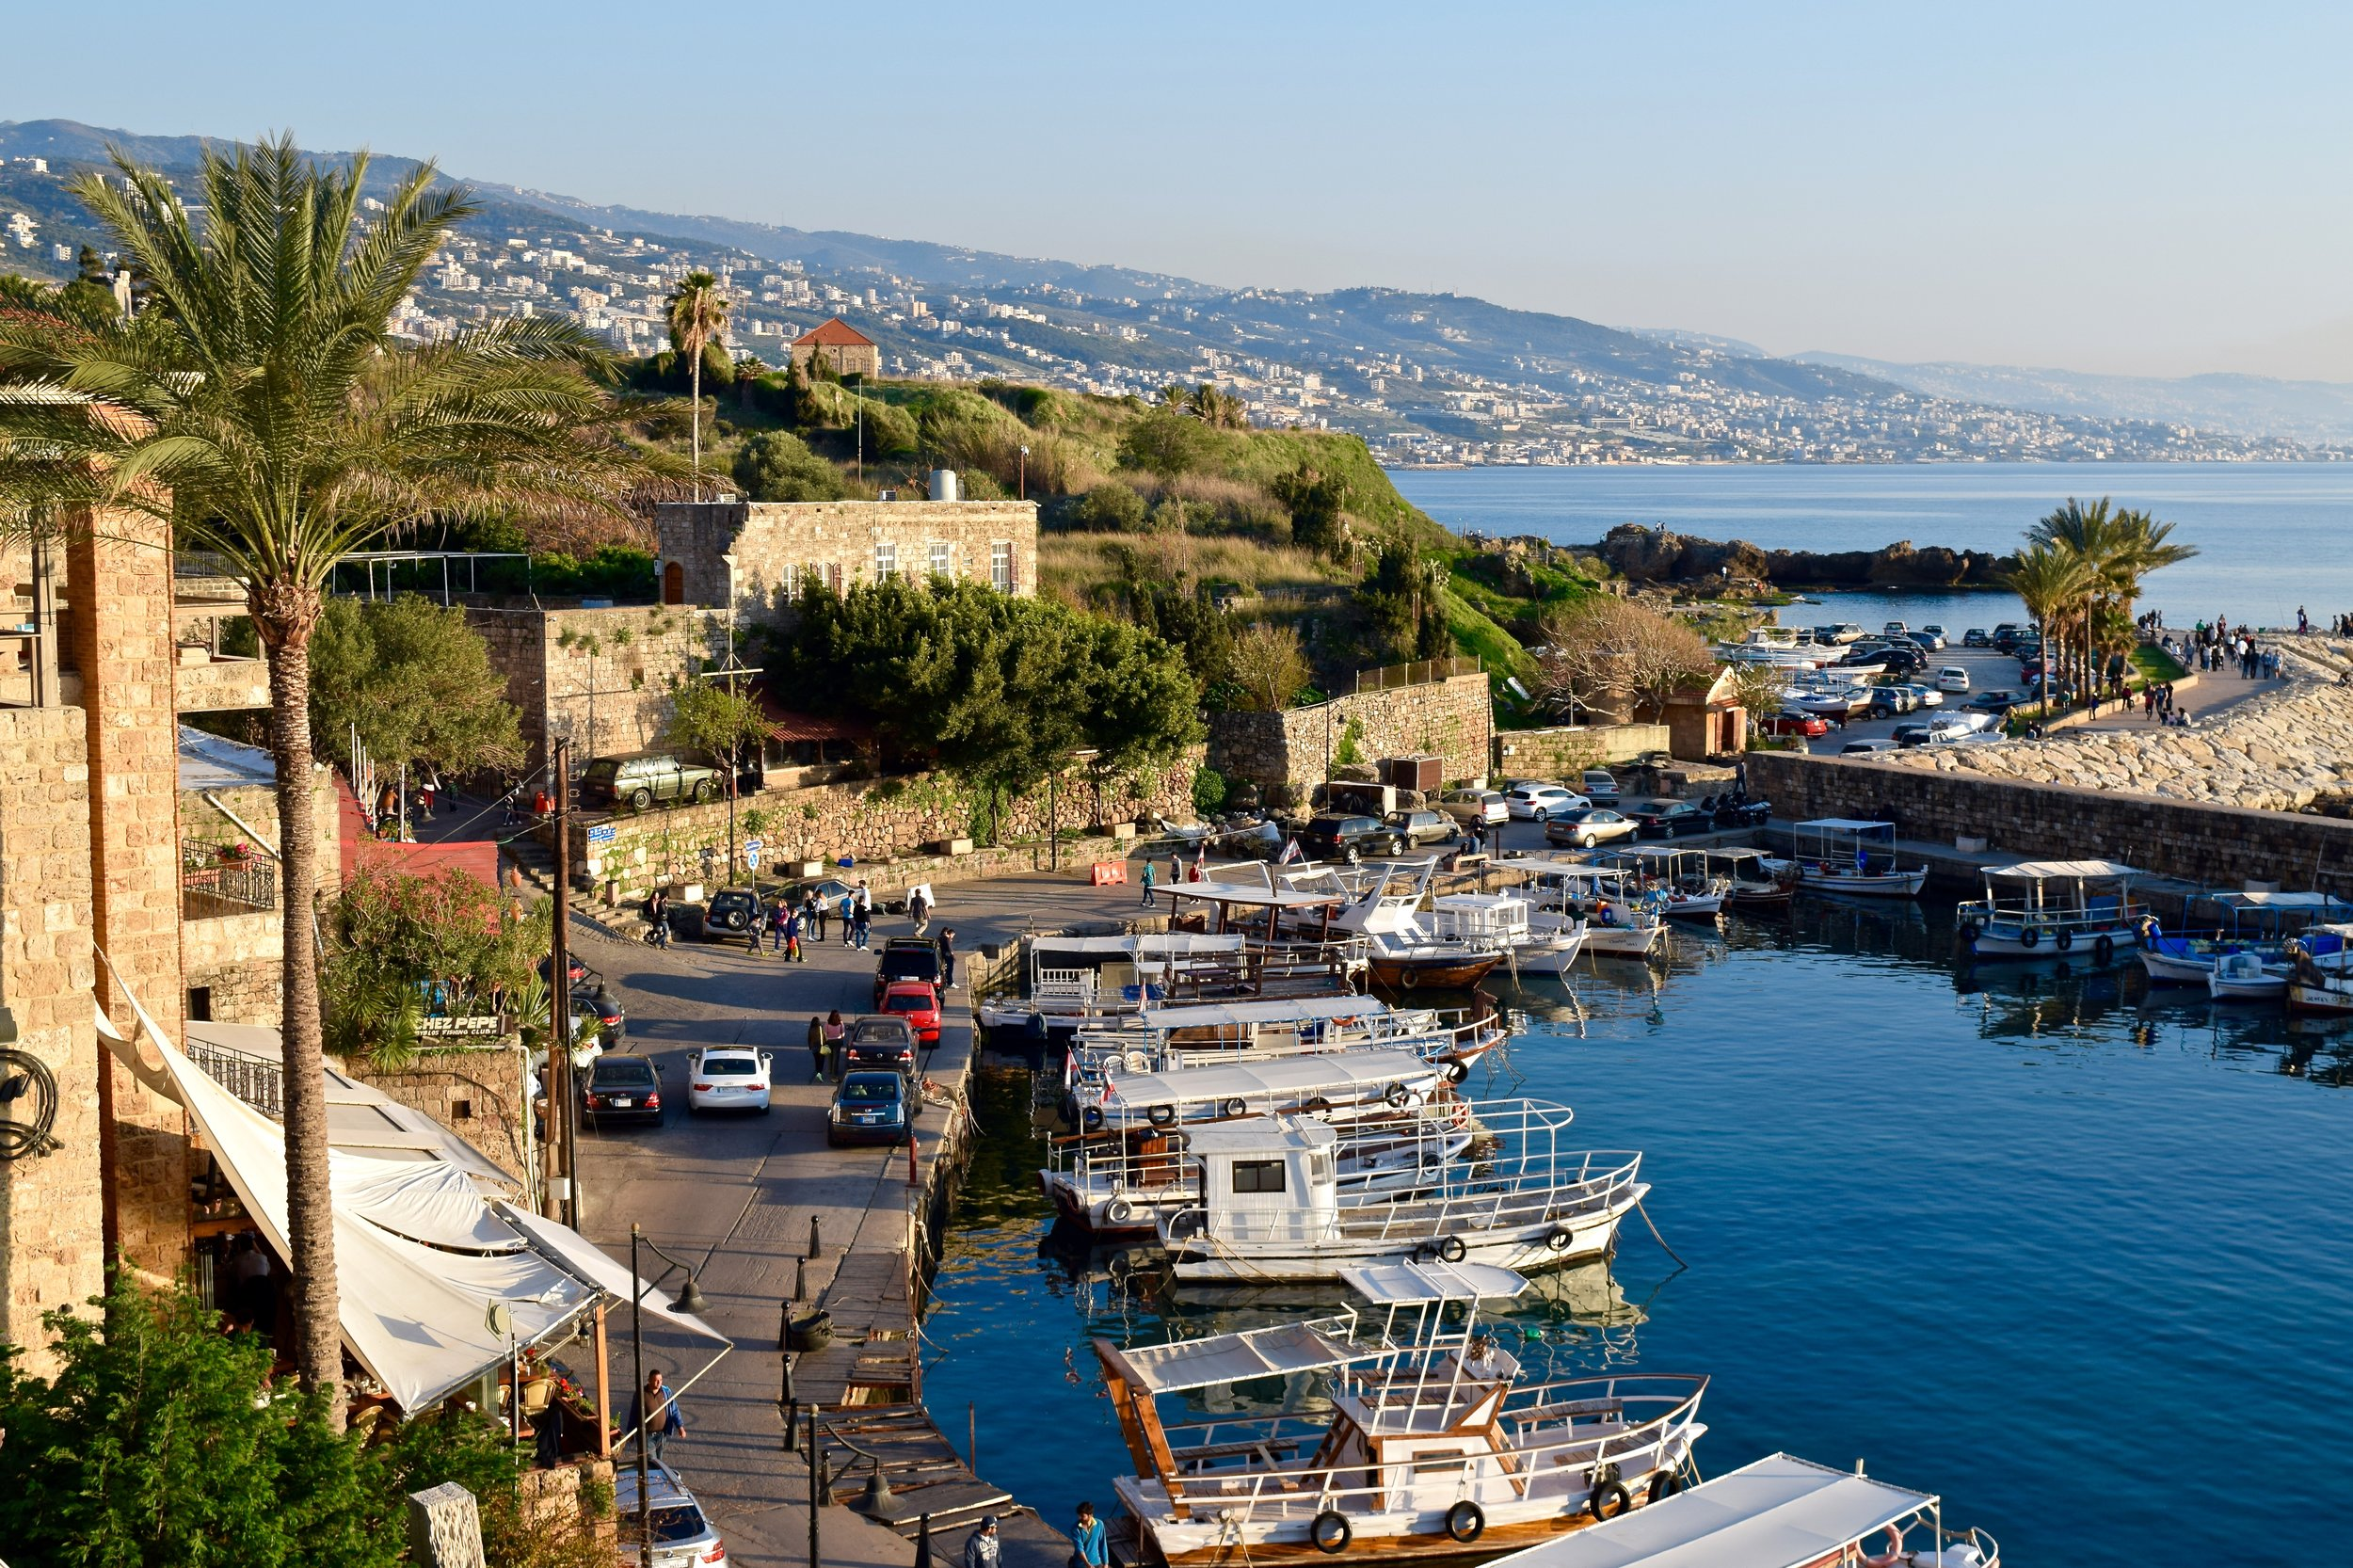 View of Byblos harbour from the top